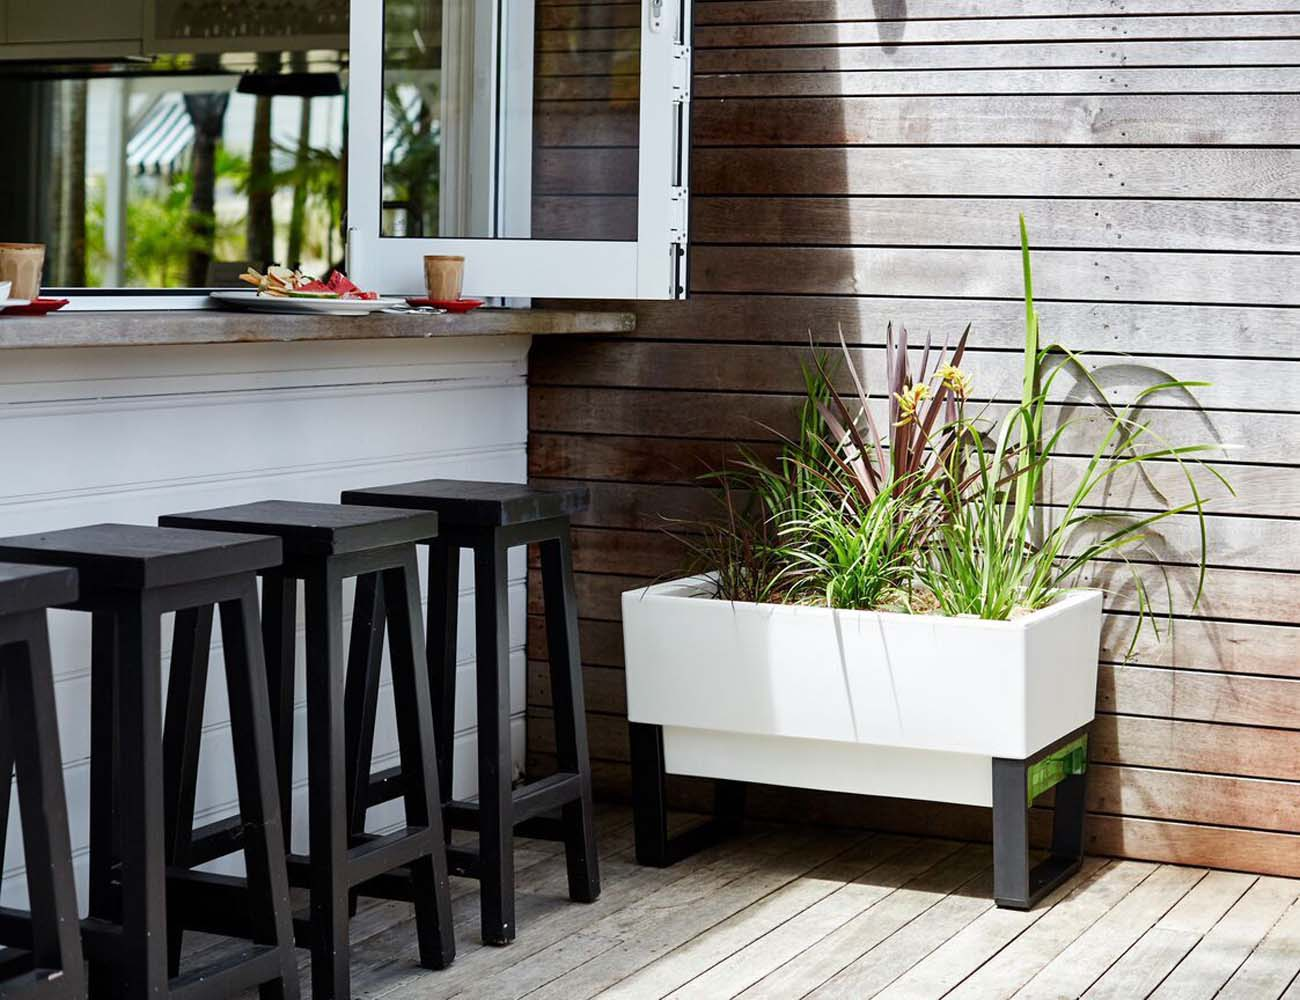 Urban Garden Self Watering Planter Gadget Flow